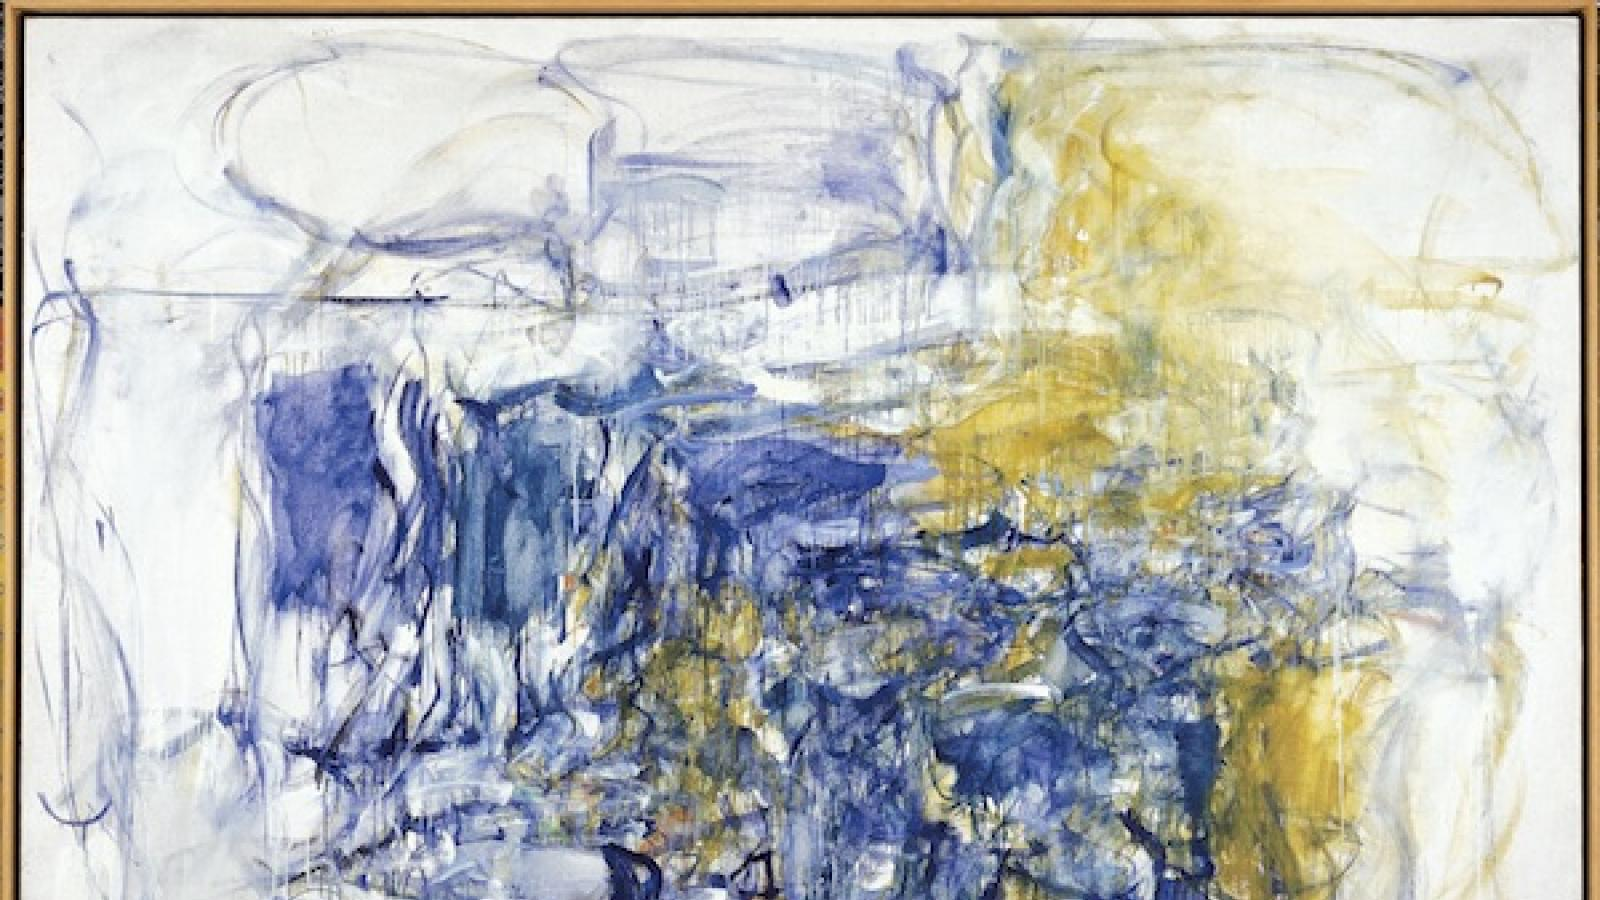 abstract expressionist work by joan mitchel in blue, white, and mustard tones